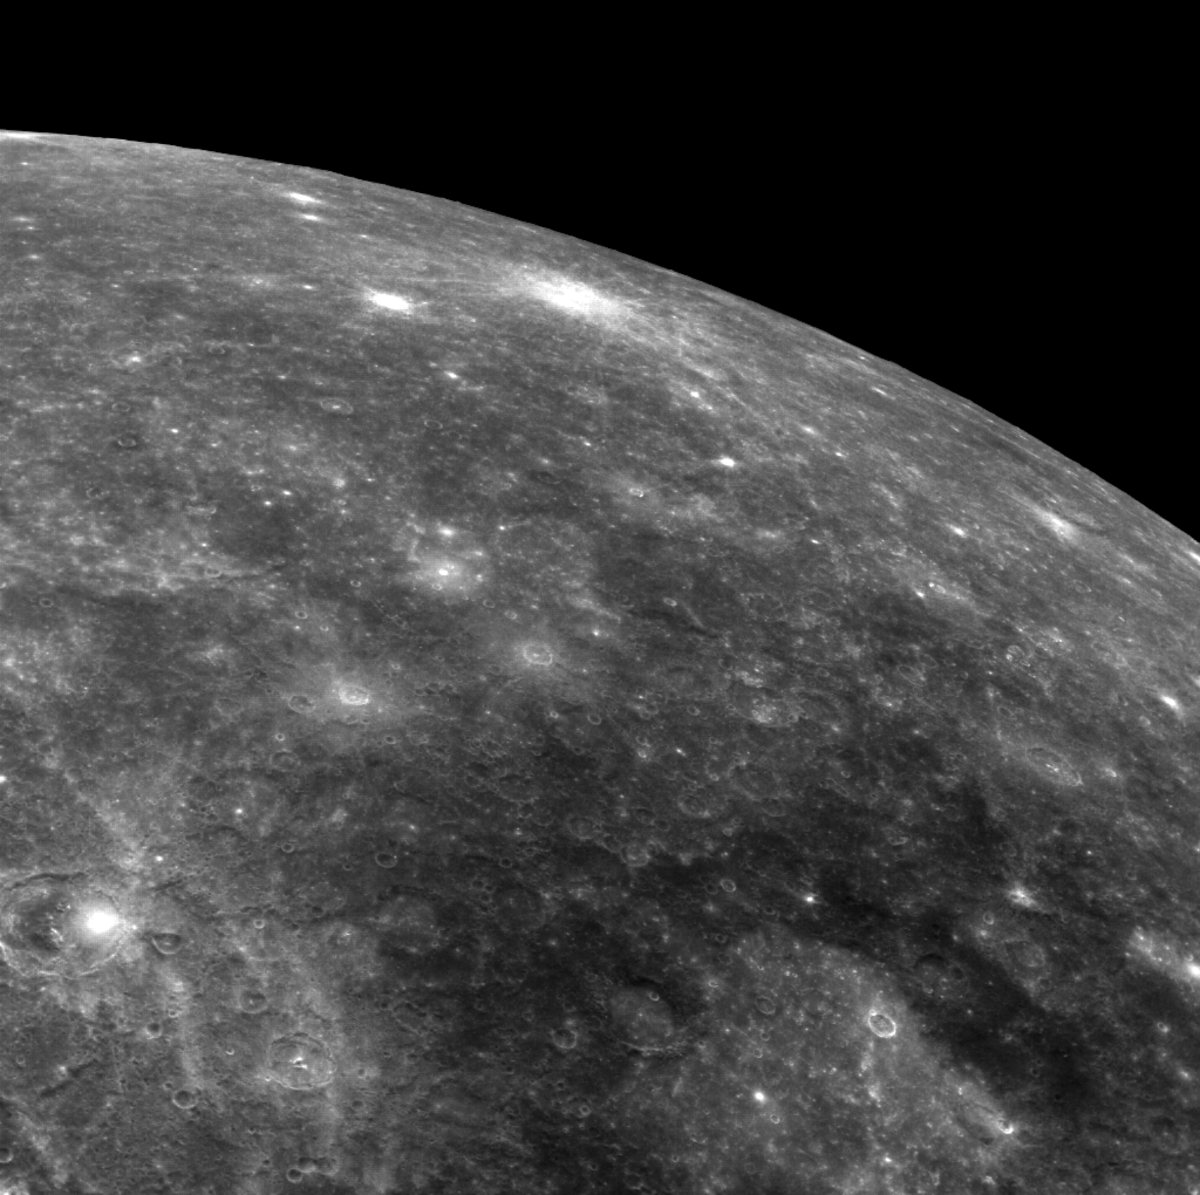 Up-close view of Mercury's surface.